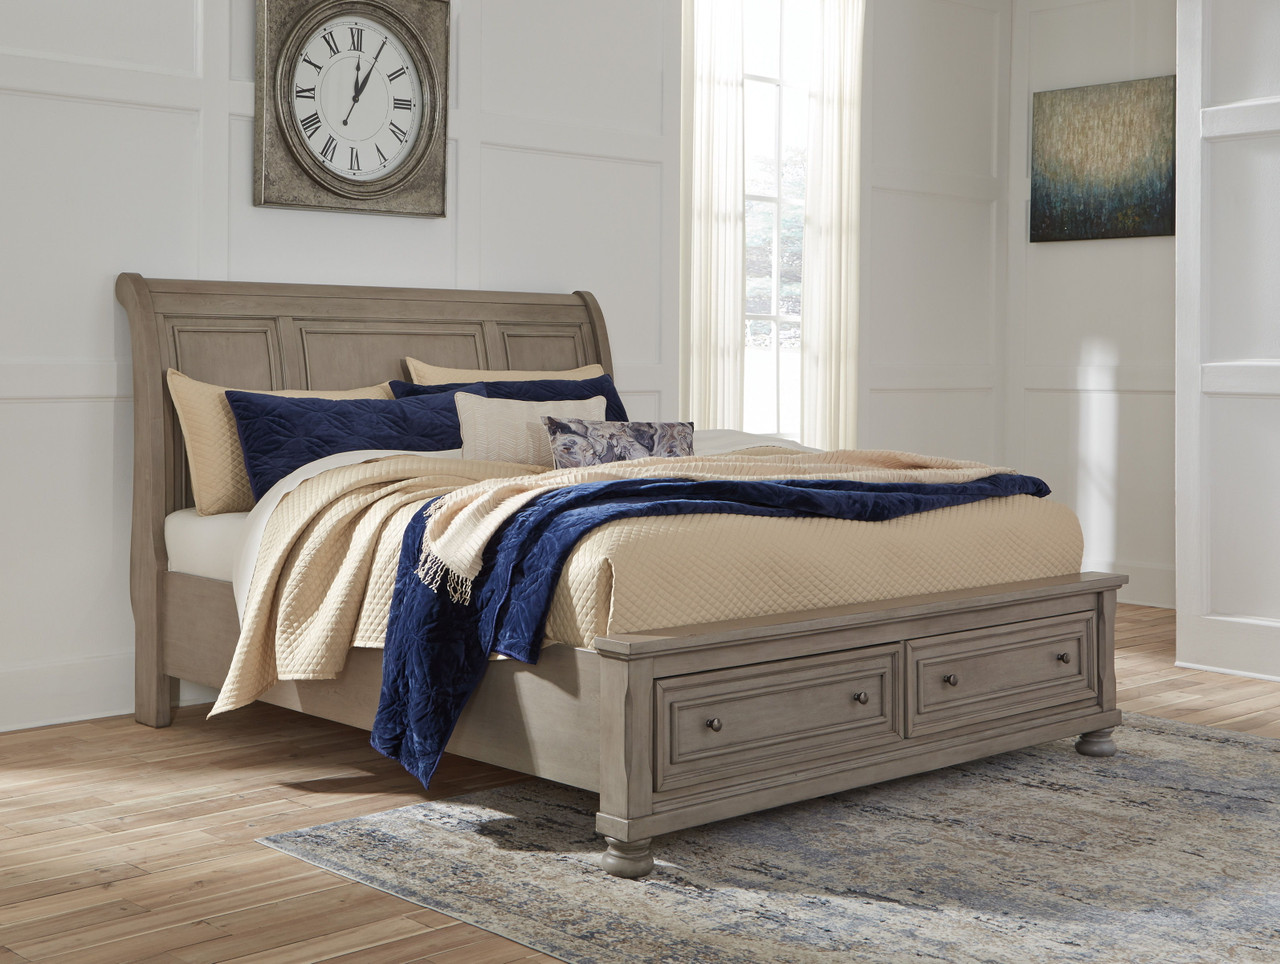 Picture of: The Lettner Light Gray Queen Sleigh Bed With Storage Available At 5 Star Furniture Serving Dallas Tx And Garland Tx